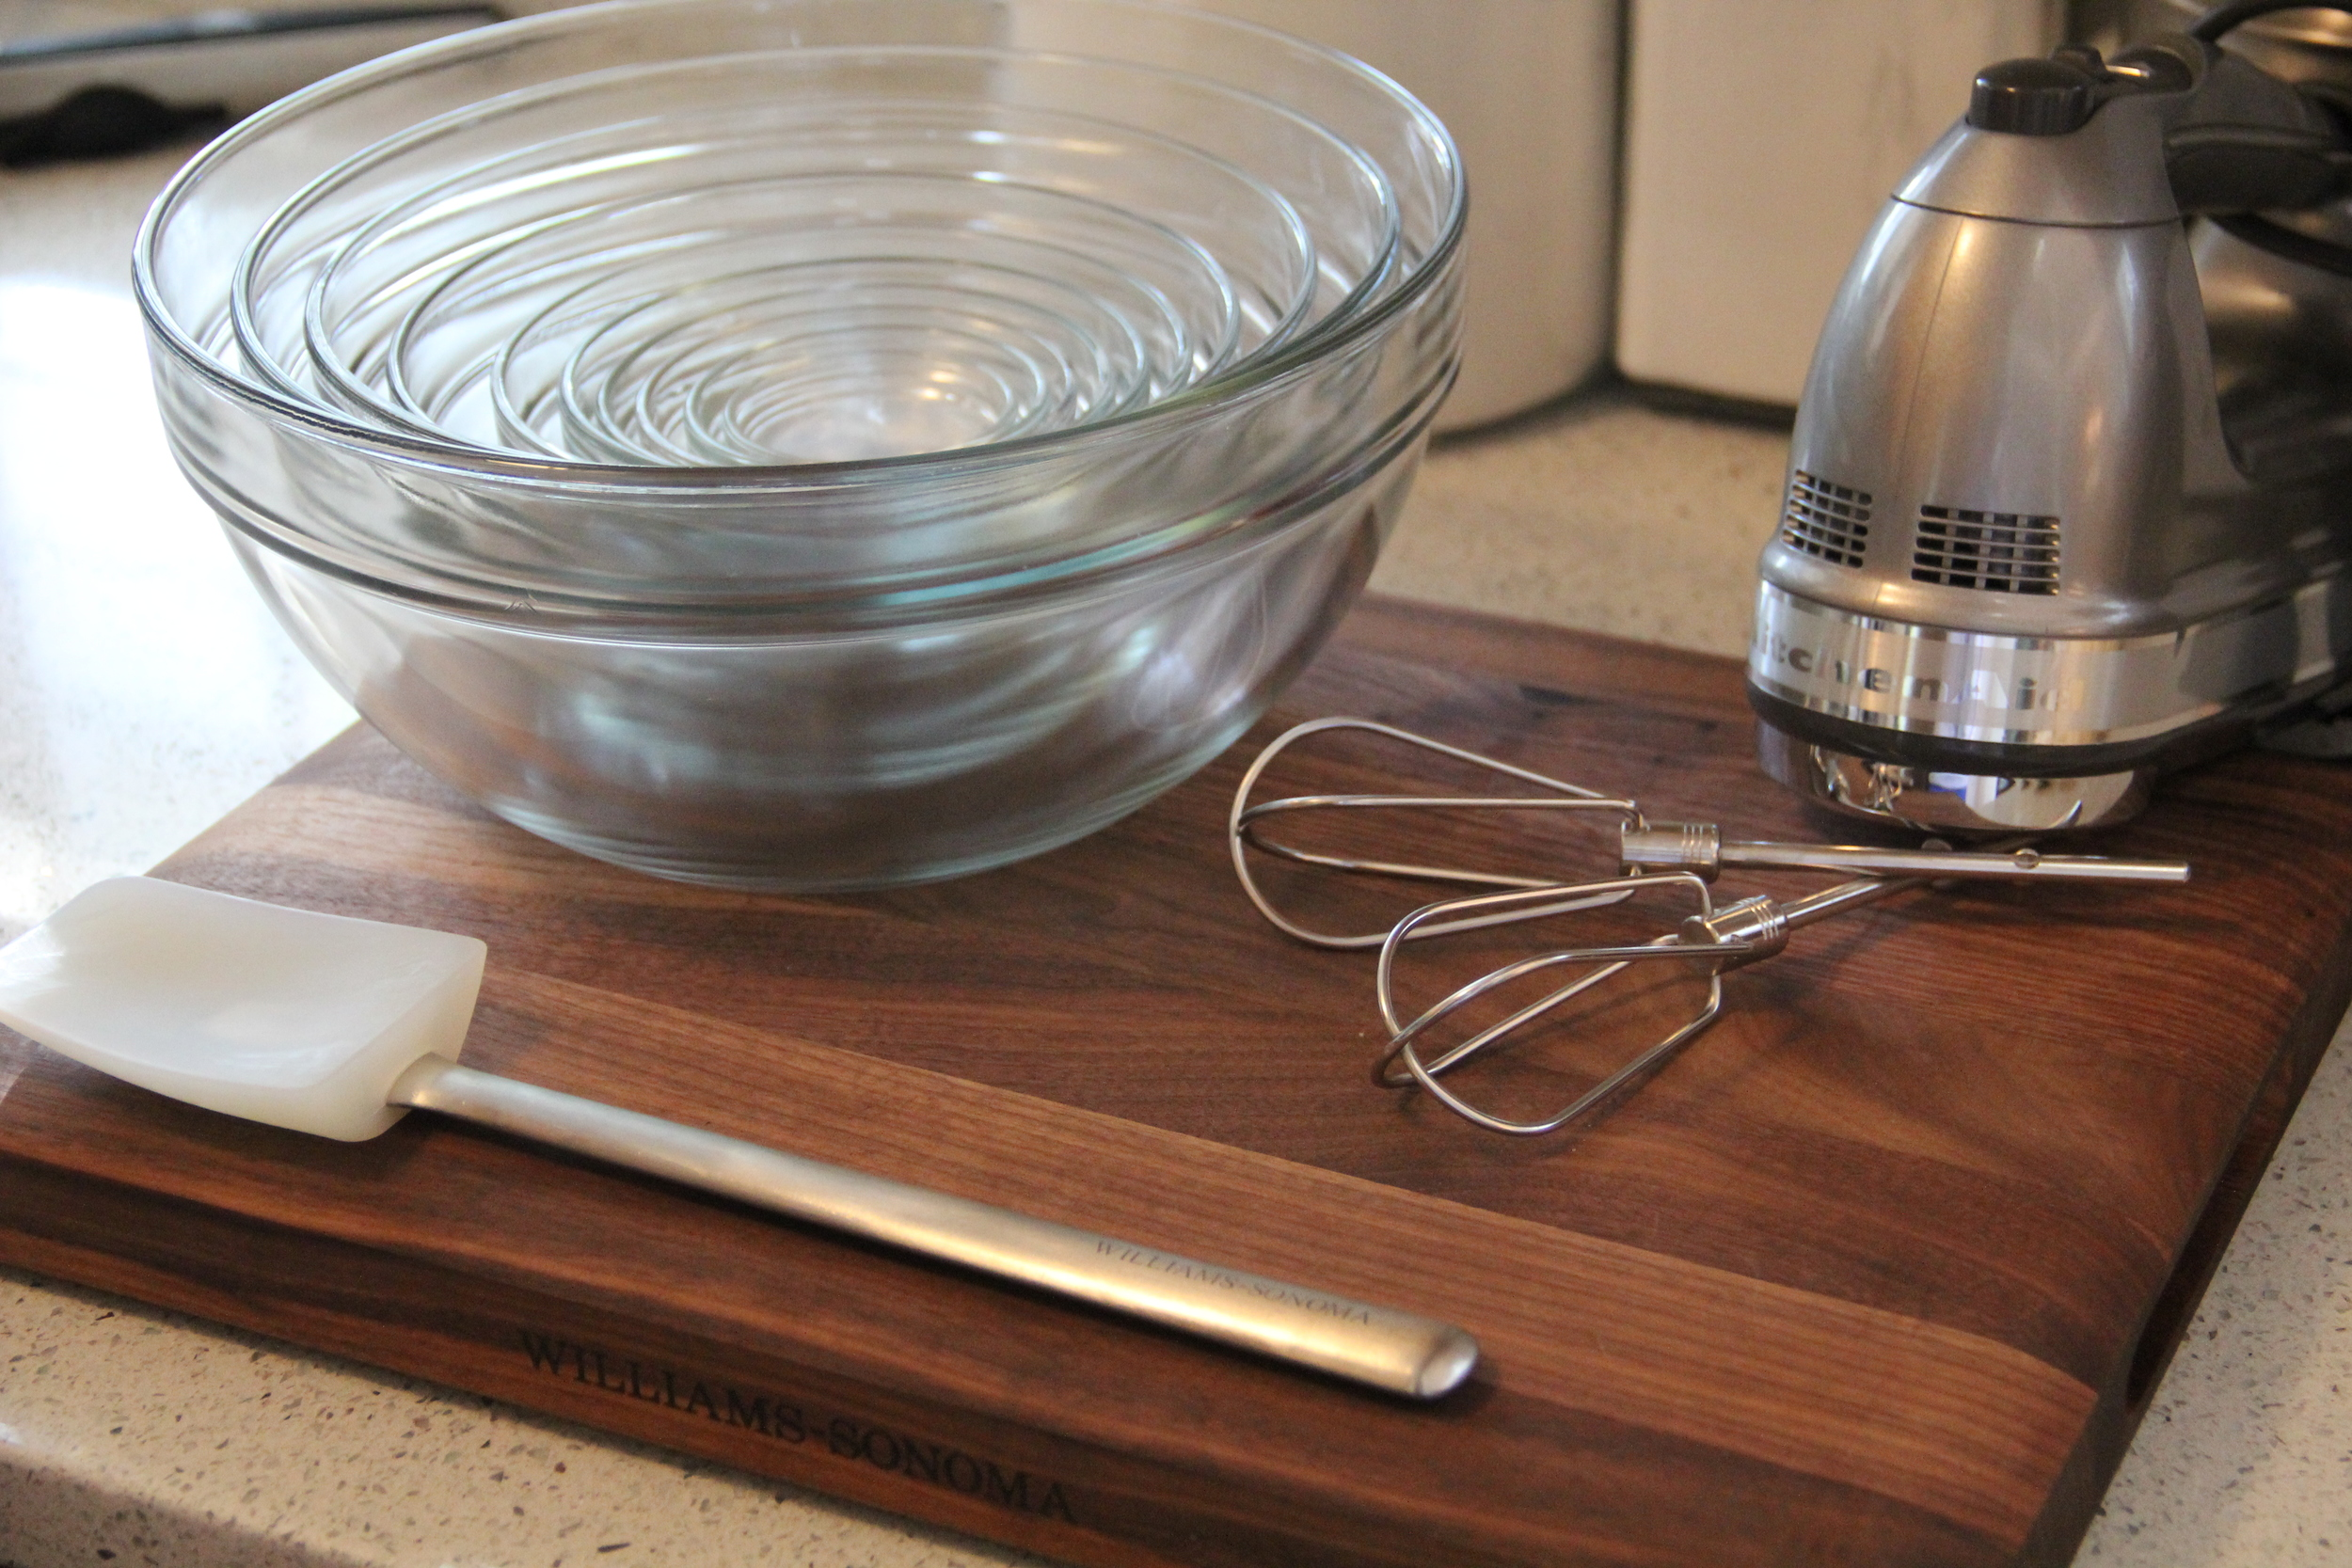 Redefining Domestics October Kitchen Tools Kitchen Aid and Williams Sonoma.JPG